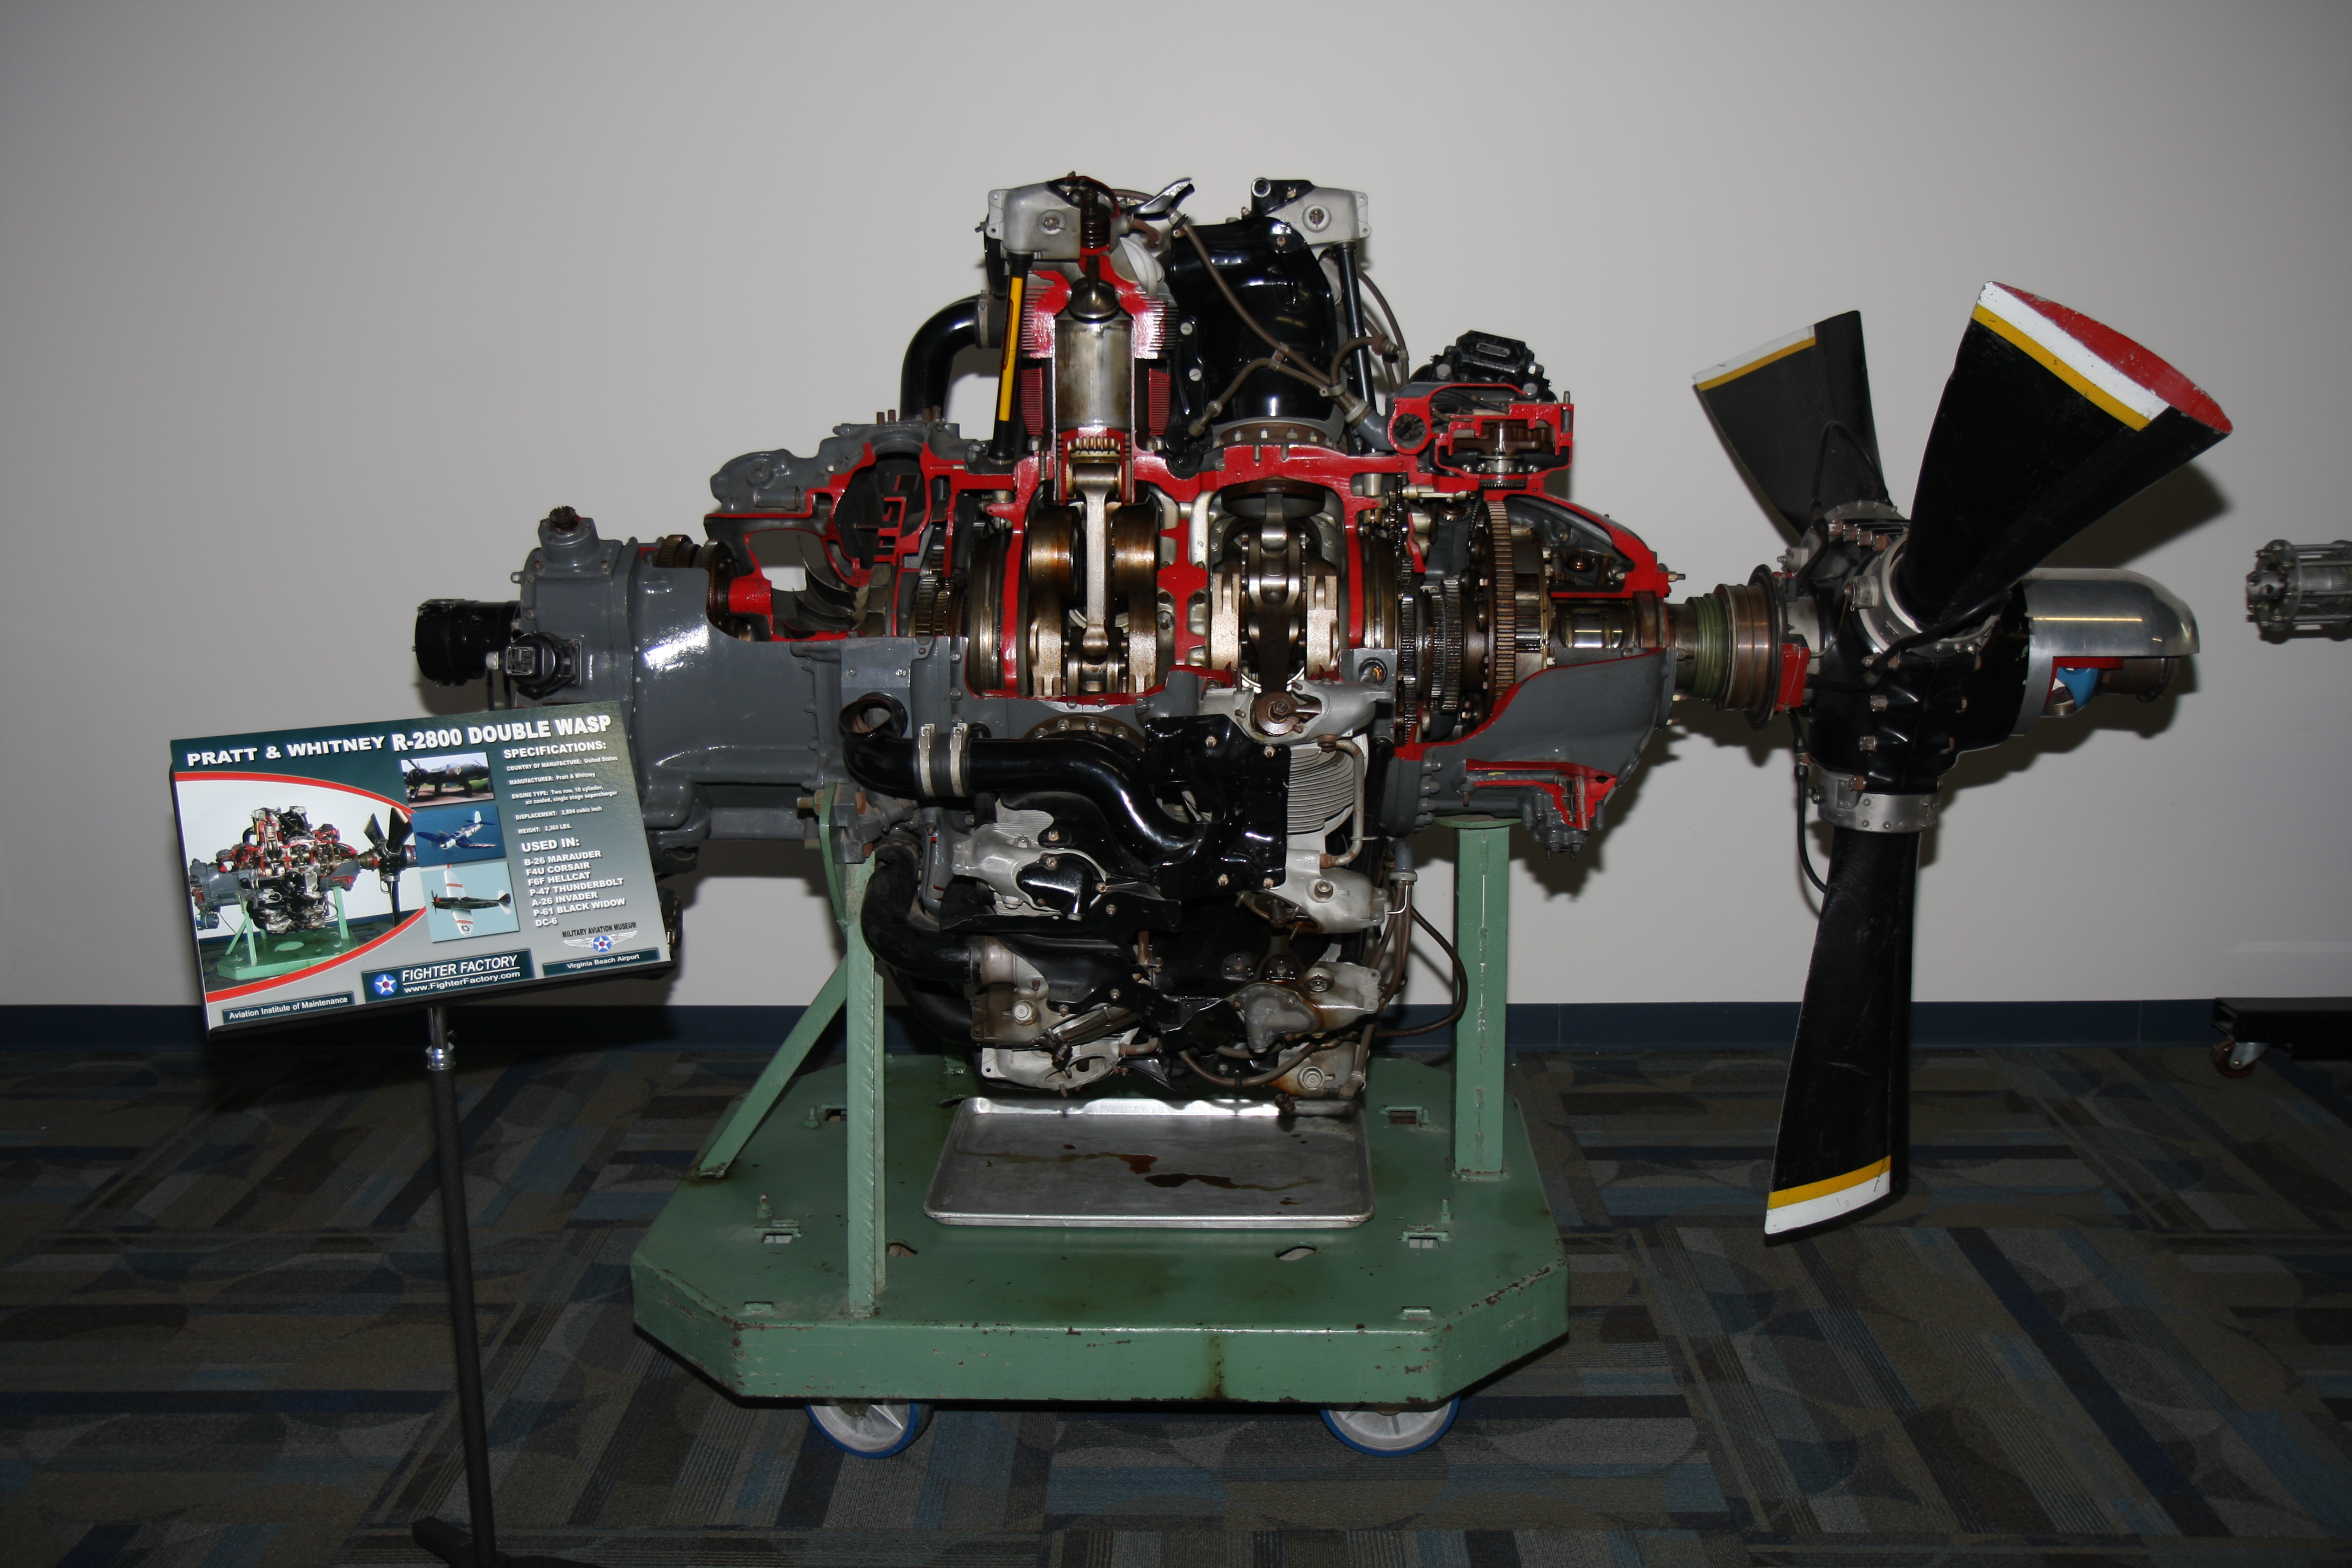 File:Military Air Museum's Pratt and Whitney R 2800 Double